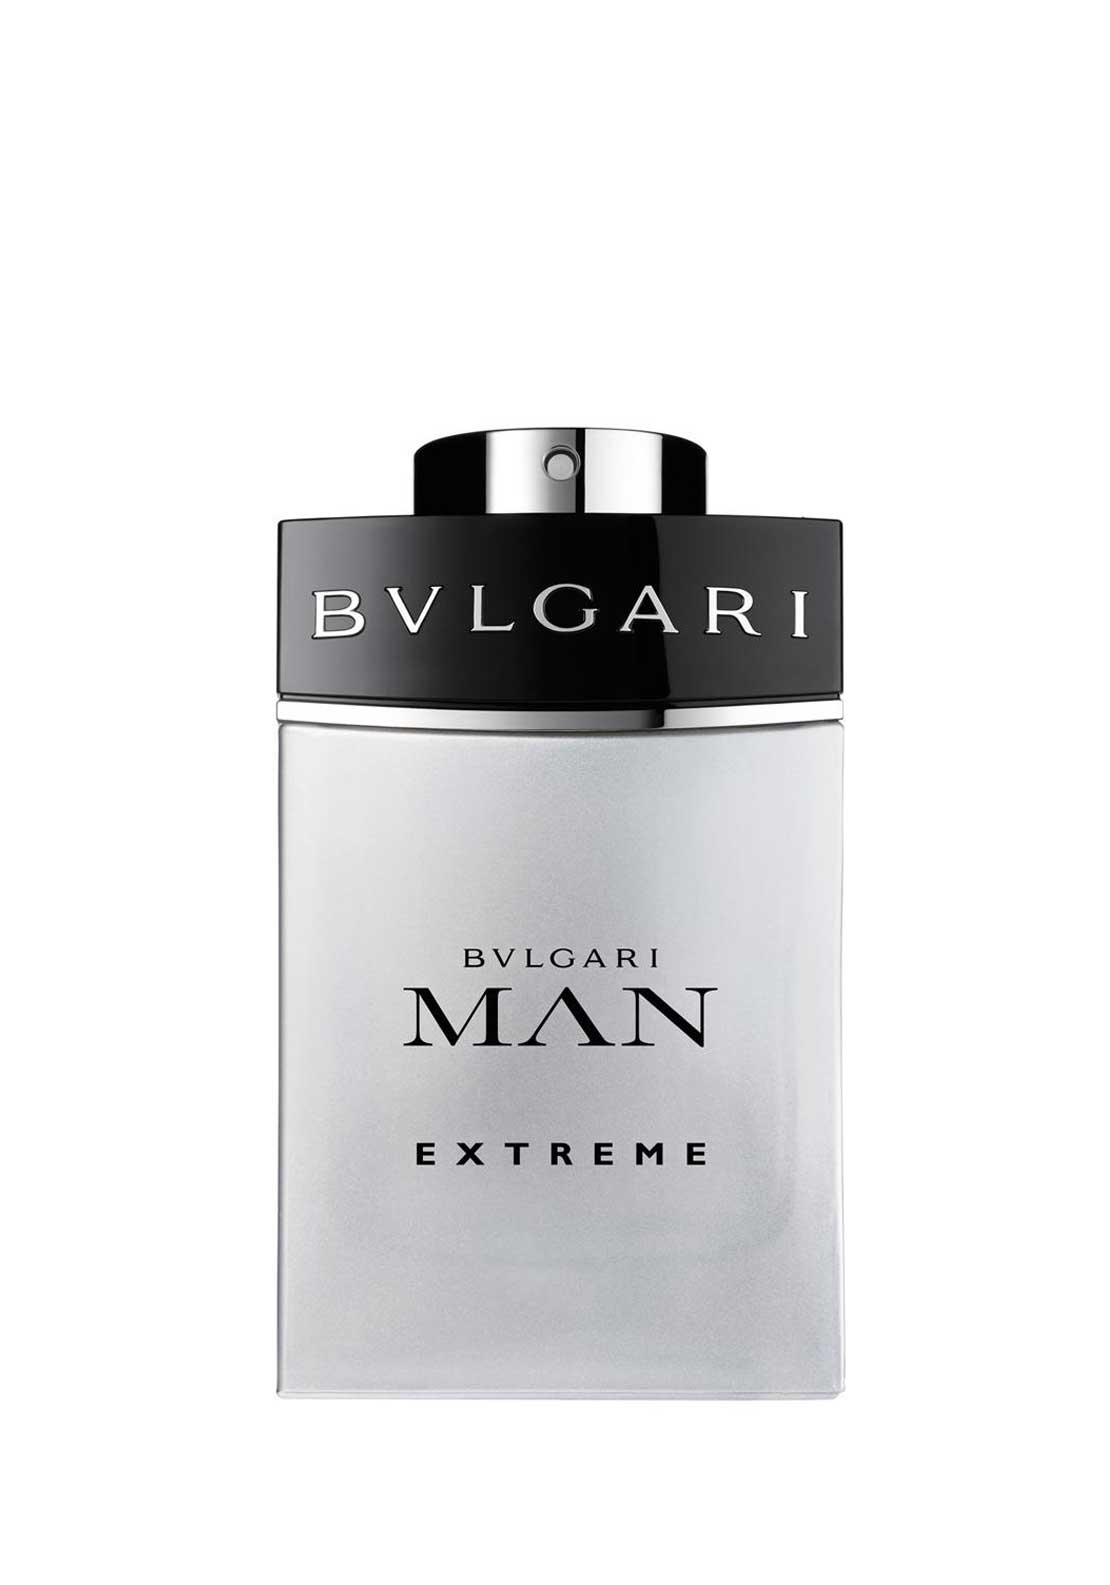 Bvlgari Man Extreme for him, 60ml